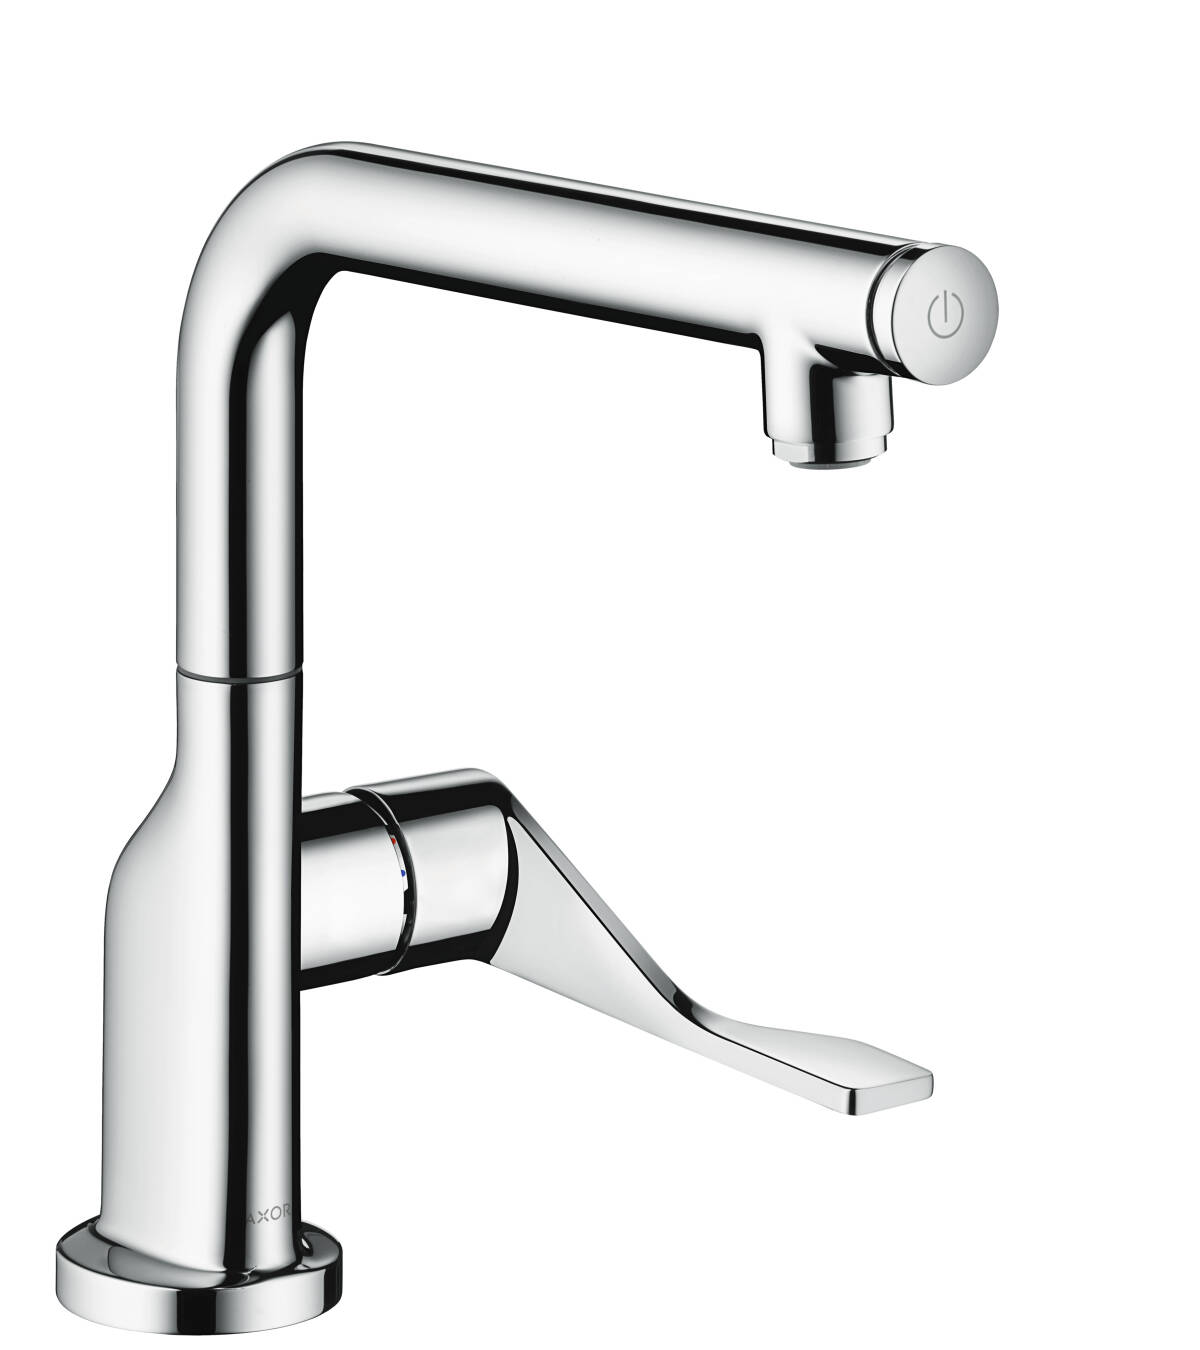 Single lever kitchen mixer Select 230 with swivel spout, Chrome, 39860000